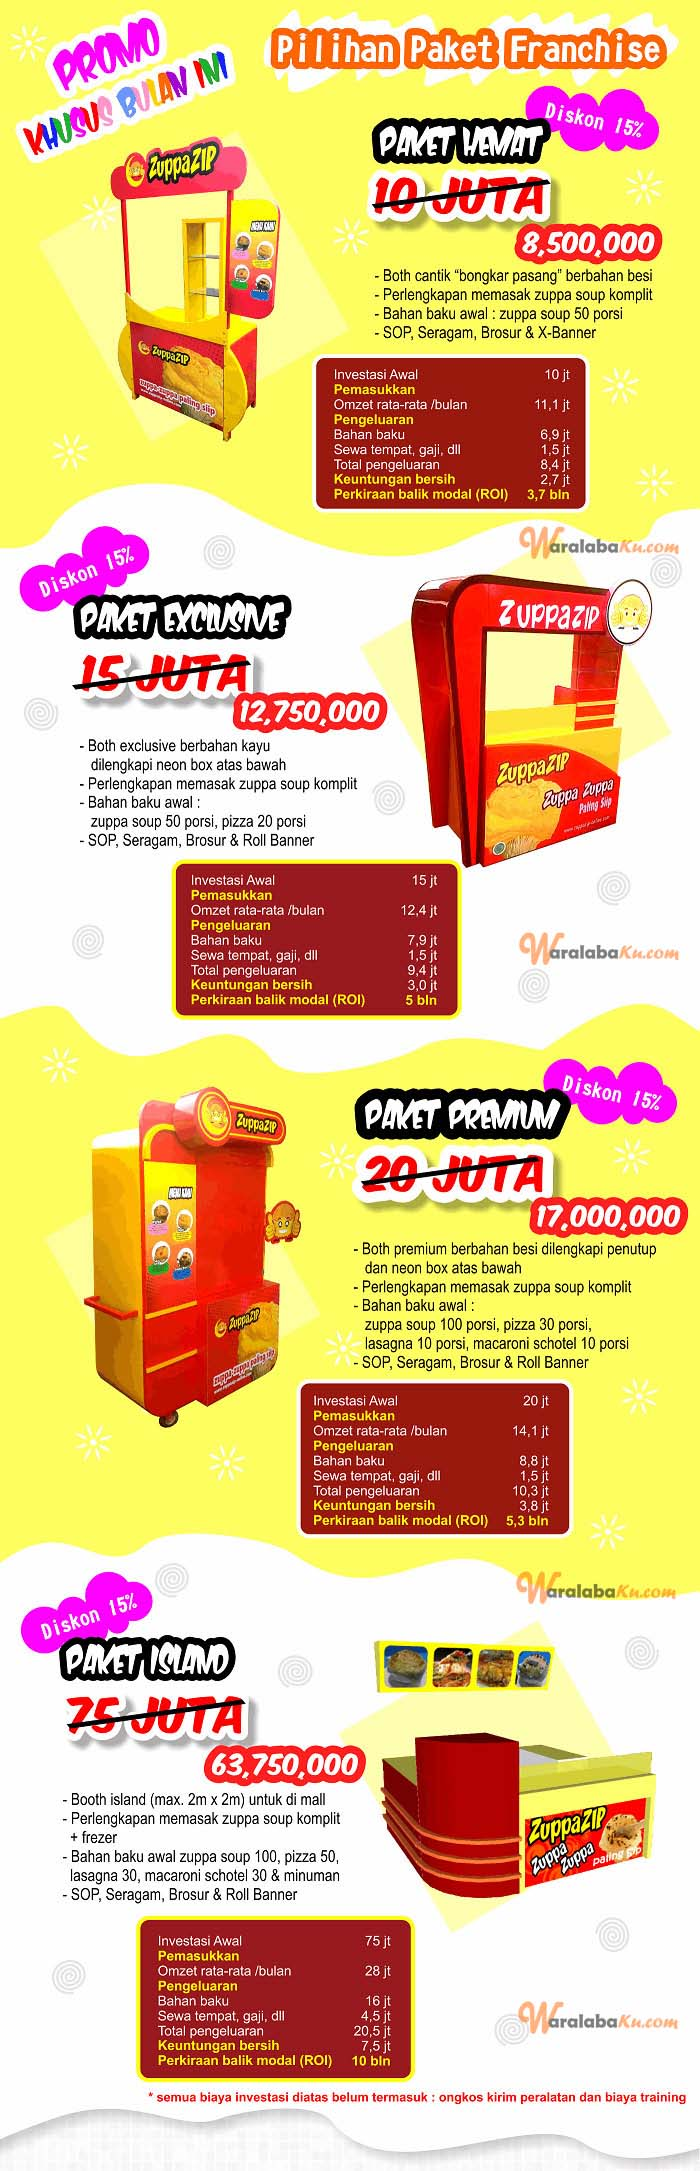 Franchise Peluang Usaha Zuppazip